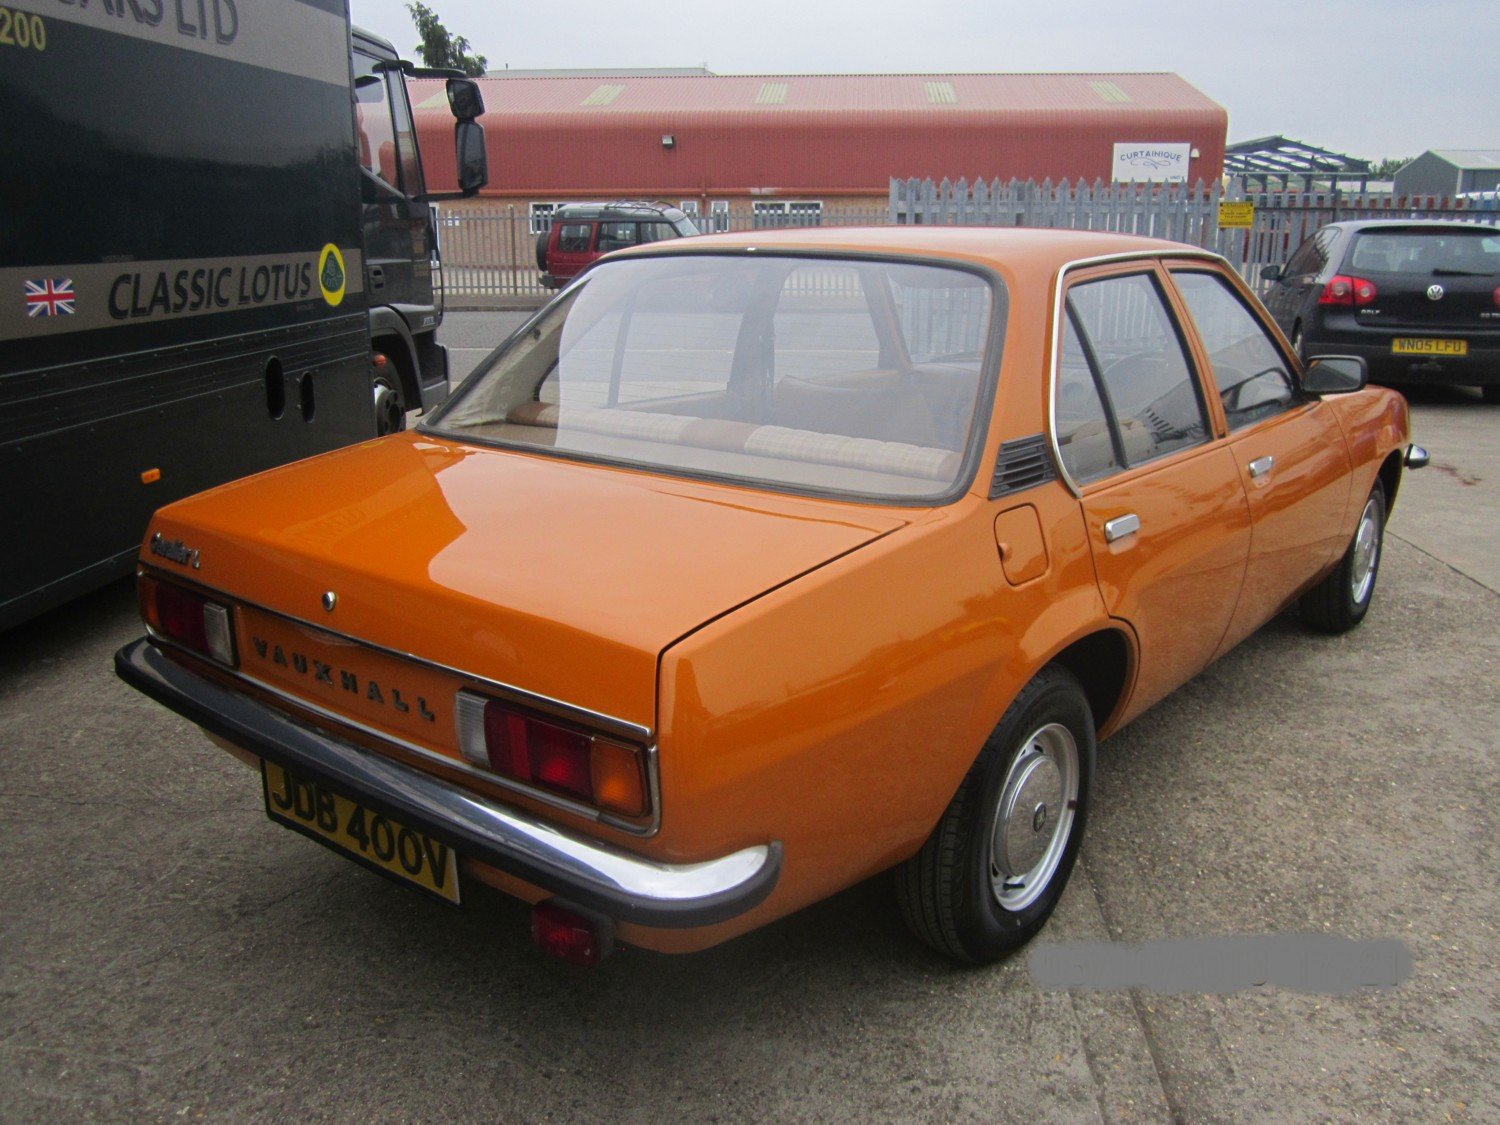 1980 Vauxhall cavalier 1250cc rare stunning For Sale (picture 2 of 6)